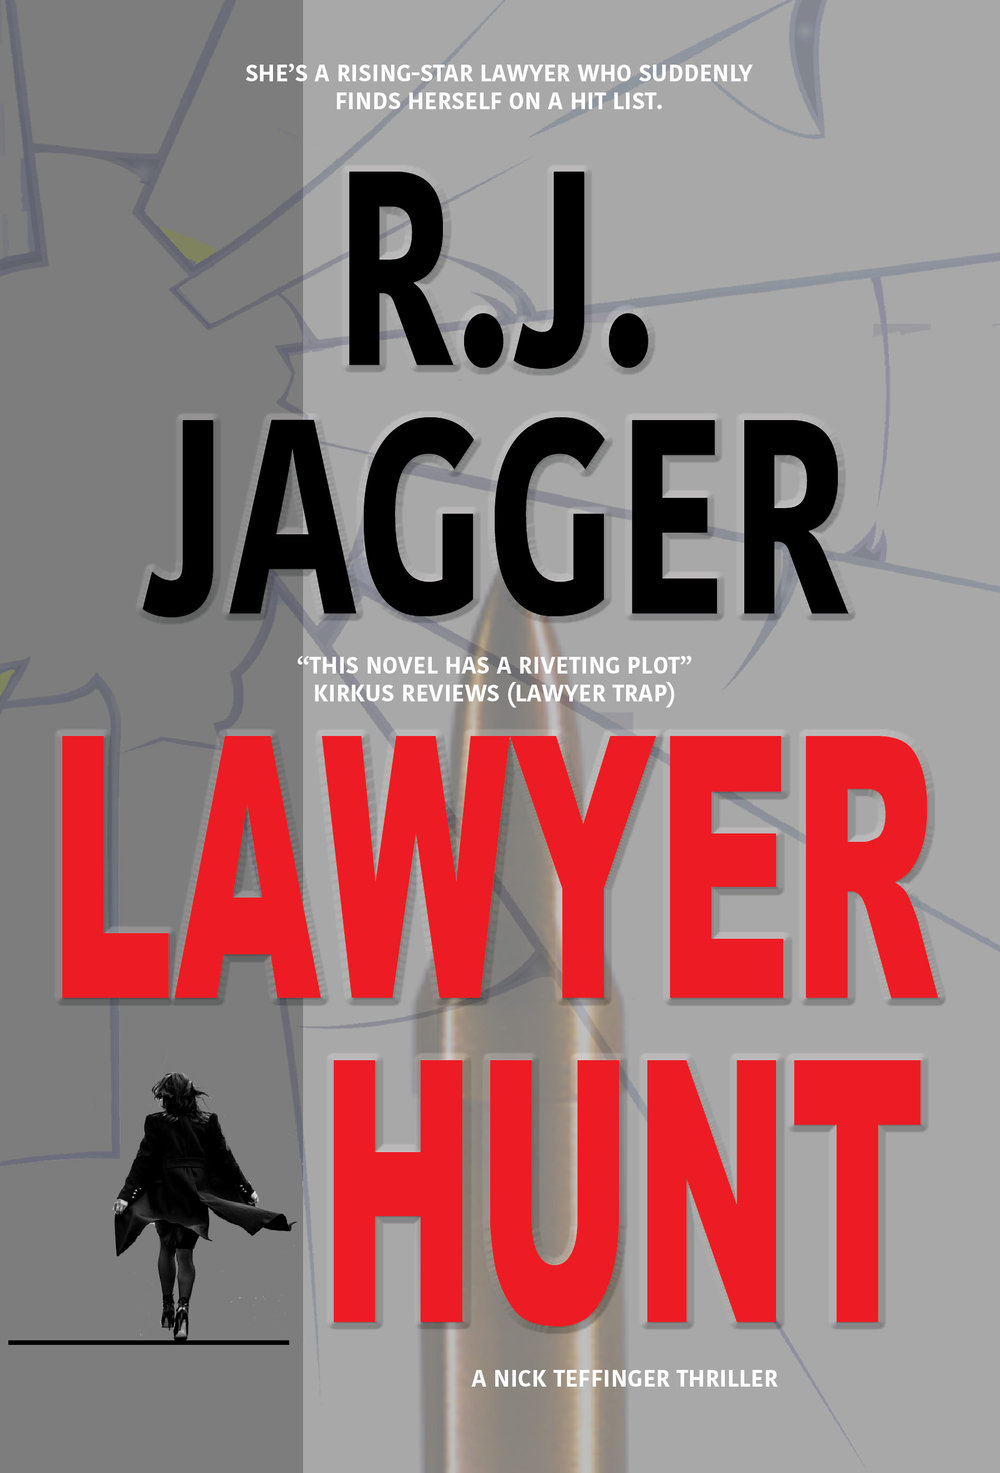 LAWYER HUNT - In this frantic thriller from acclaimed author R.J. Jagger, an up-and-coming associate attorney discovers that she's on a murder list and frantically searches for answers, not only to save her life but also to find out whether she was tricked into participating in a murder herself.Coming in 2018 in hardcover, paperback, ebook.Distributed by Ingram.